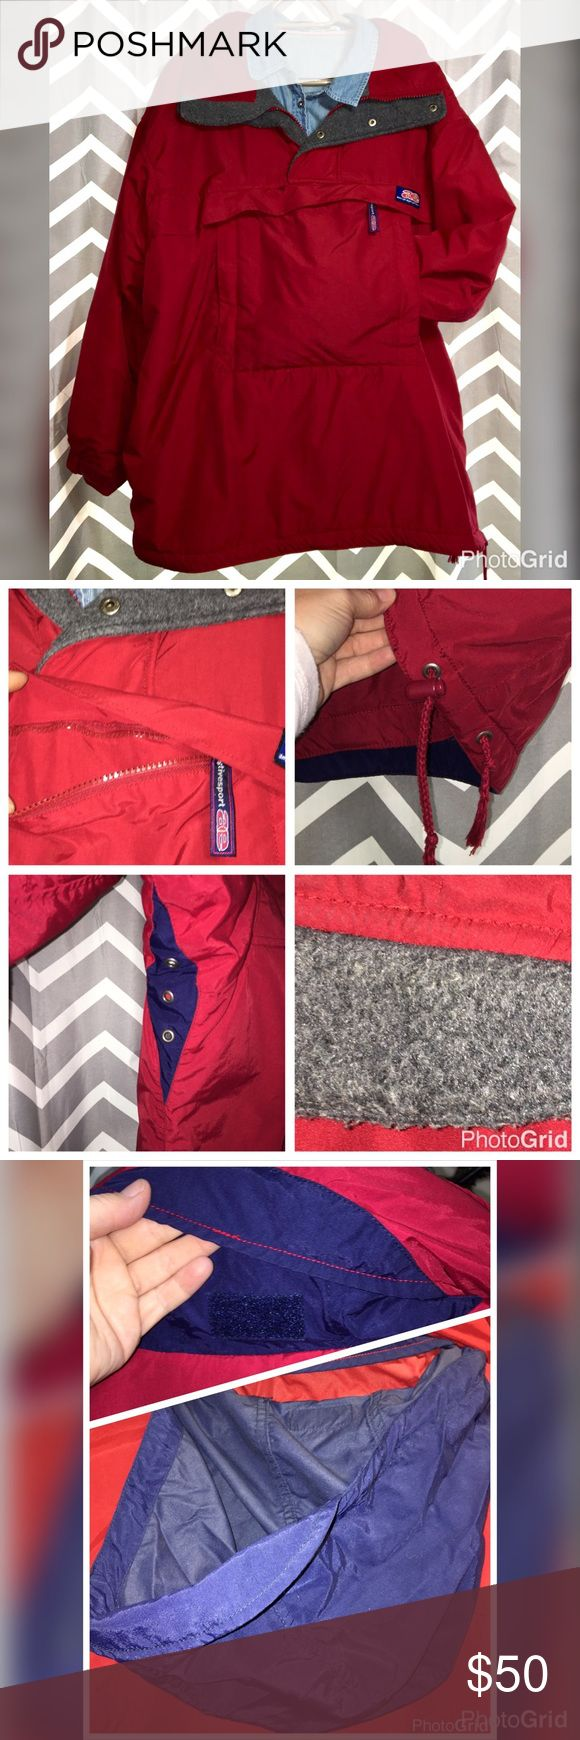 American Eagle Pullover Red Winter Jacket Unisex This is a Mens Medium that I wore for a 🏂 or just outdoor blowing the snow jacket. I was a Woman's XXL or Plus size 18/20. This is well taken care of but does have pilling on the grey fleece part. It does NOT impact the performance of the jacket. It kept me cozy warm during Minnesota winters. Please see pics for all the features. American Eagle Outfitters Jackets & Coats Ski & Snowboard